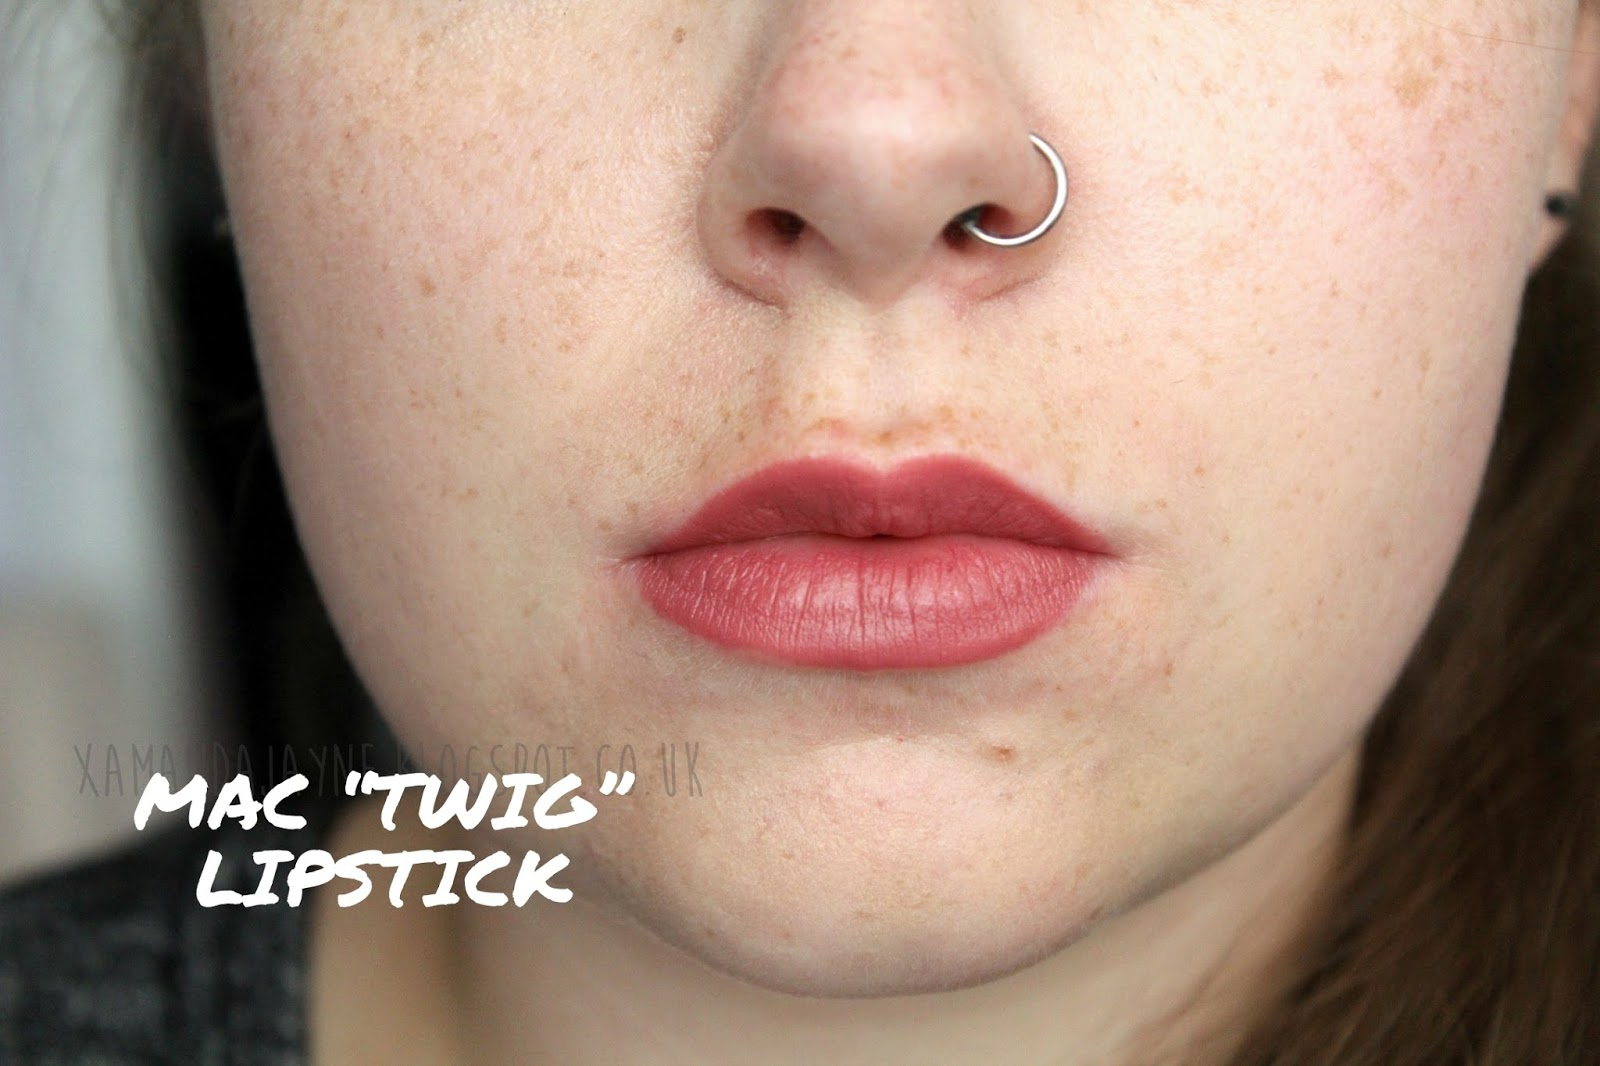 mac, review, lipstick, twig, high end, nude lipstick, swatches